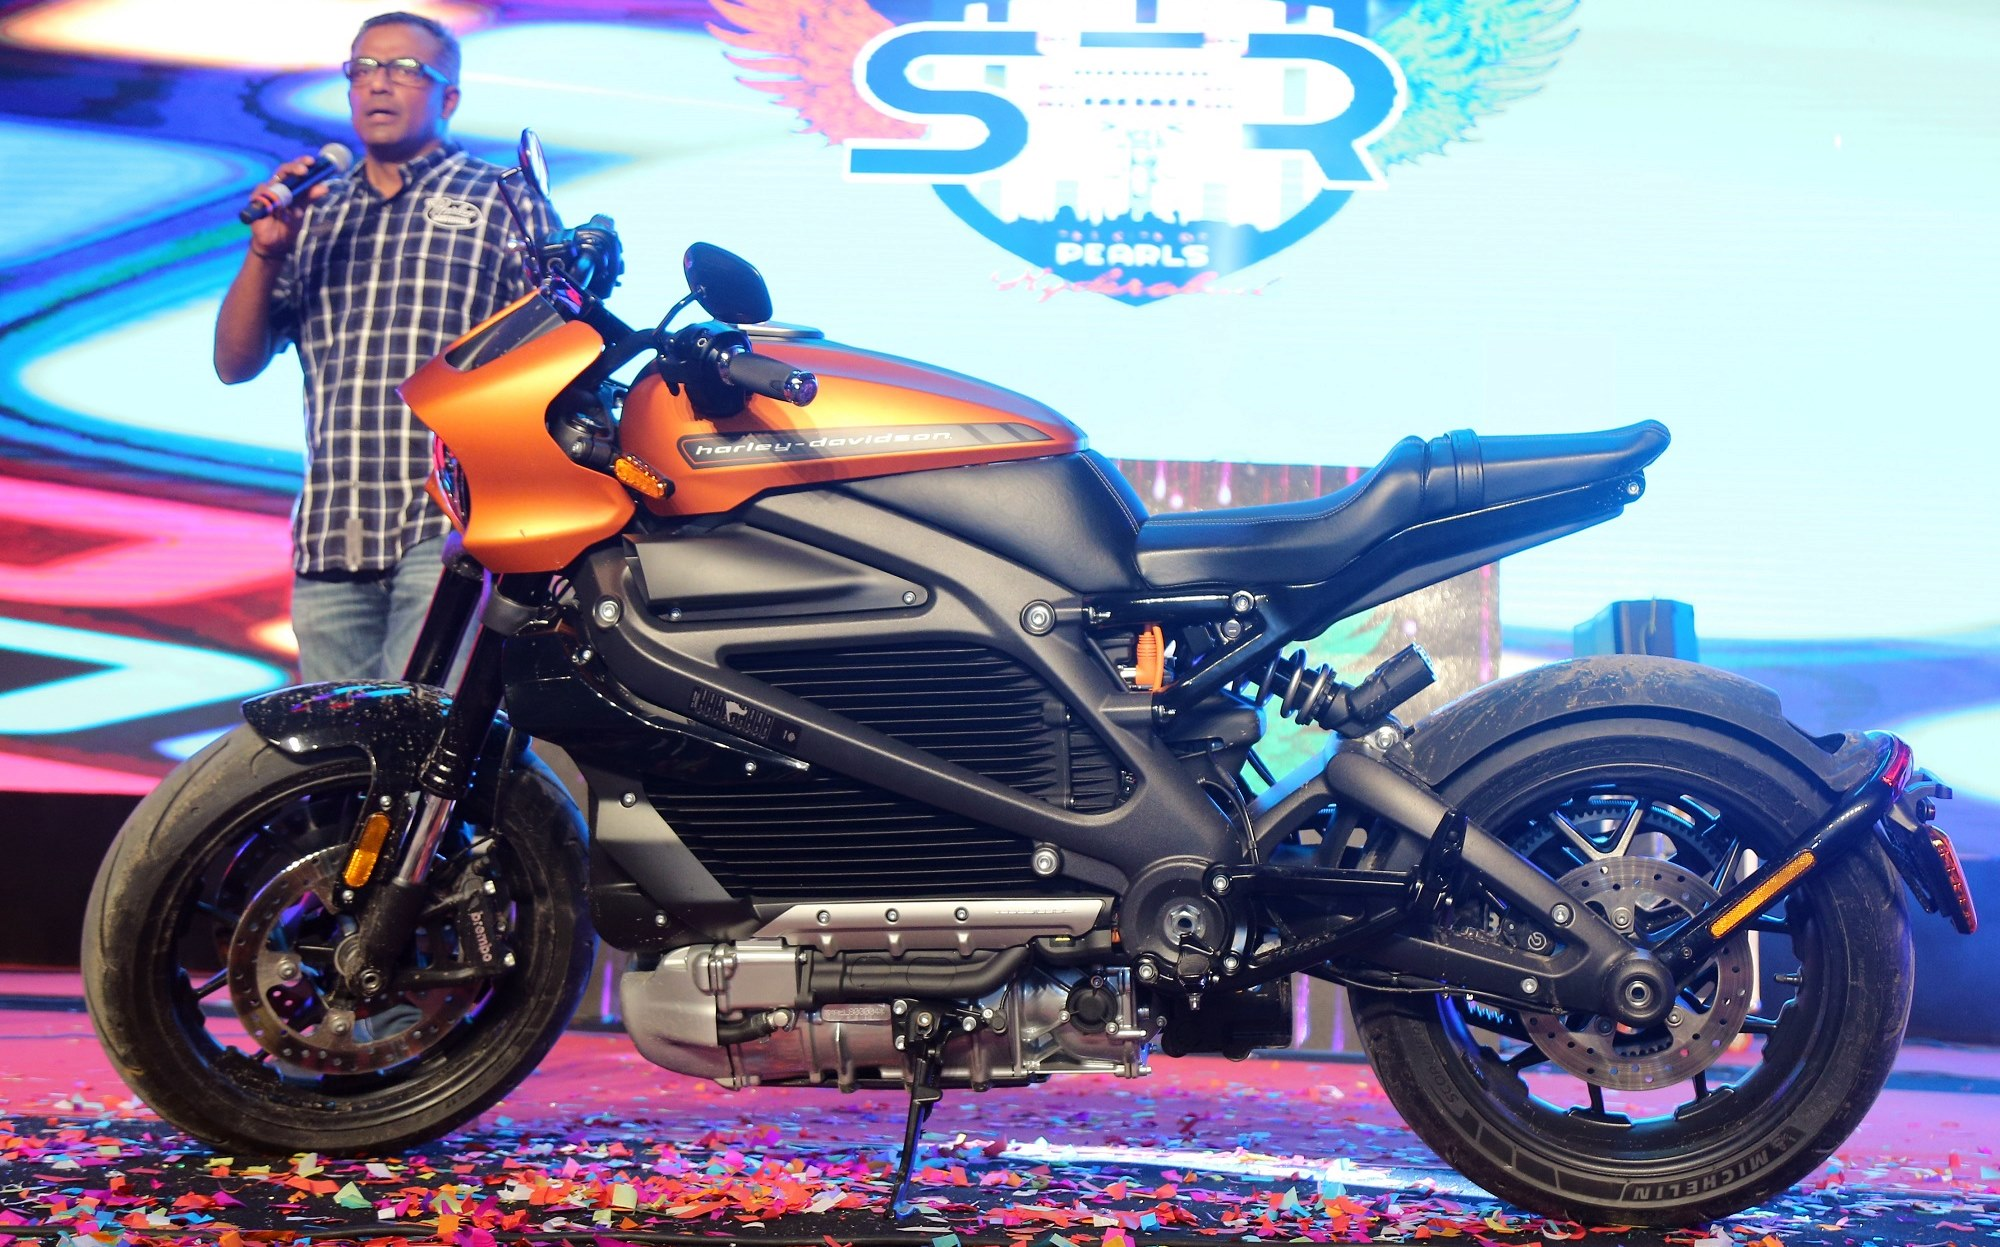 Sajeev Rajashekharan M.D H-D India on stage at 8th Southern H.O.G. Rally hosted by Banjara Harley-Davidson